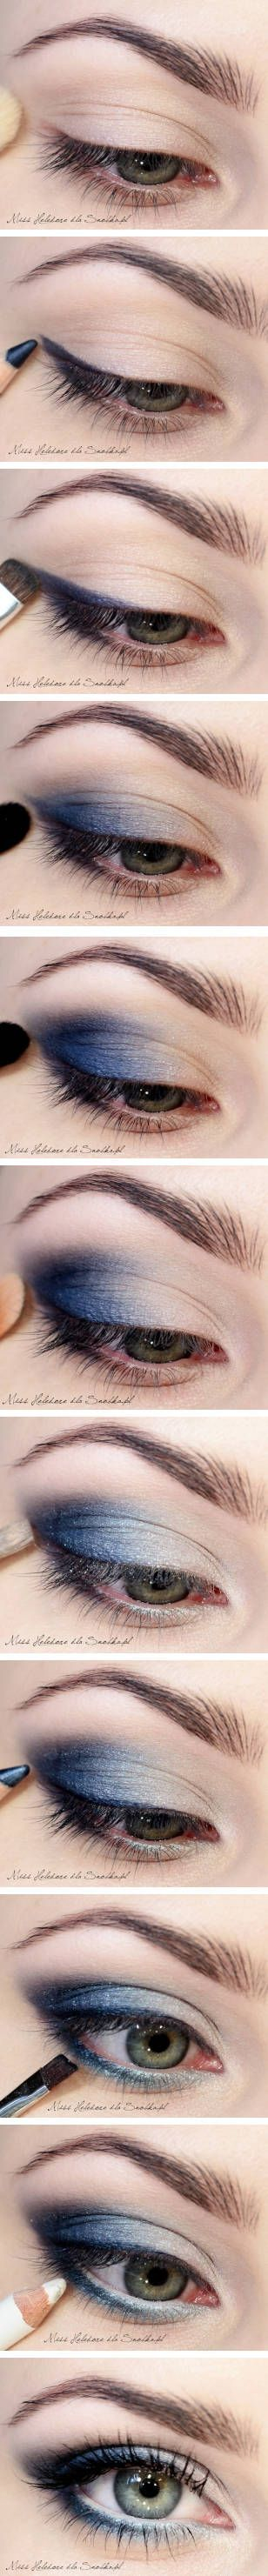 smoky eye with blue--perfect for wedding makeup!